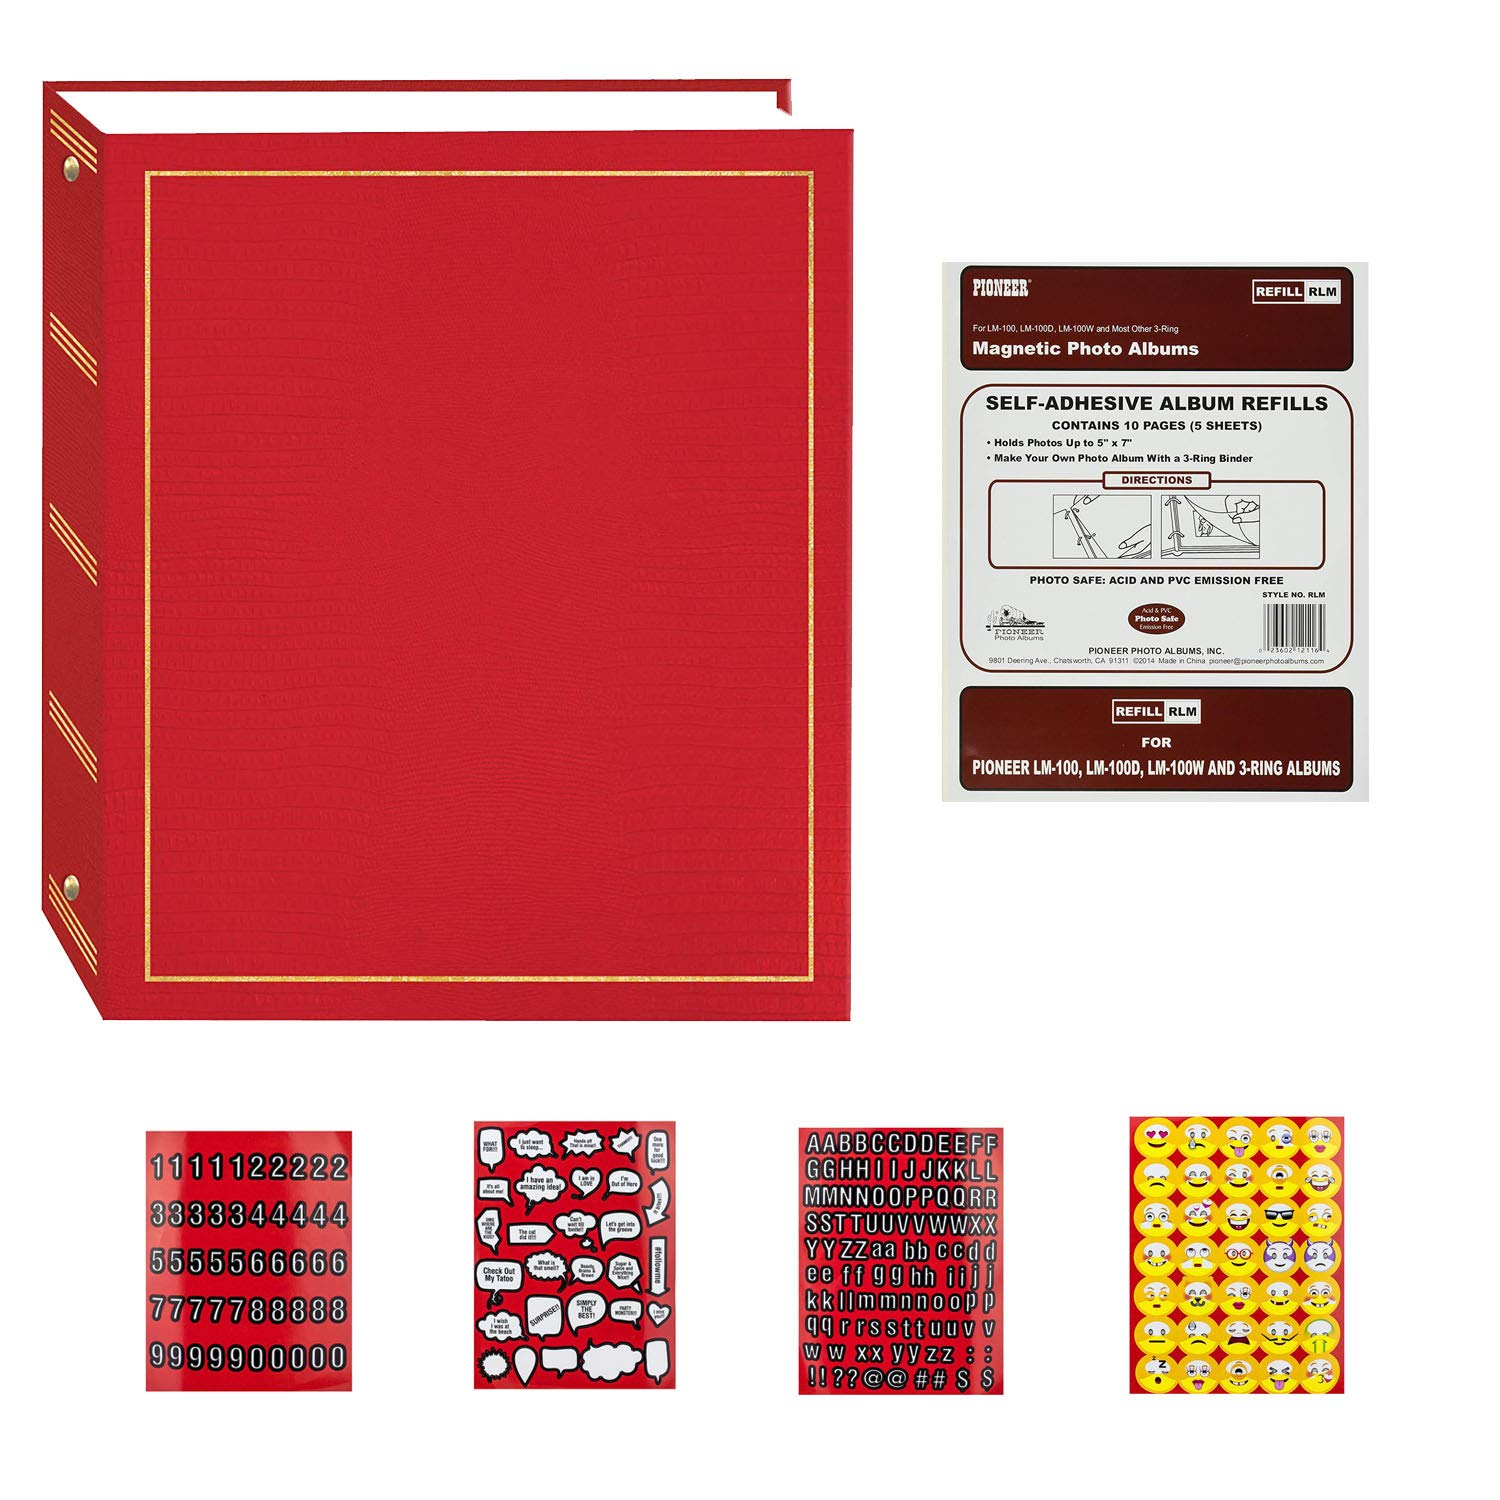 Pioneer Magnetic Self-Stick 3-Ring Solid Cover Photo Album 100 Pages (50 Sheets) with Pack of 10 Magnetic Photo Album Refill Pages (5 Sheets) + 4 Pages of Emojis Stickers (Red)